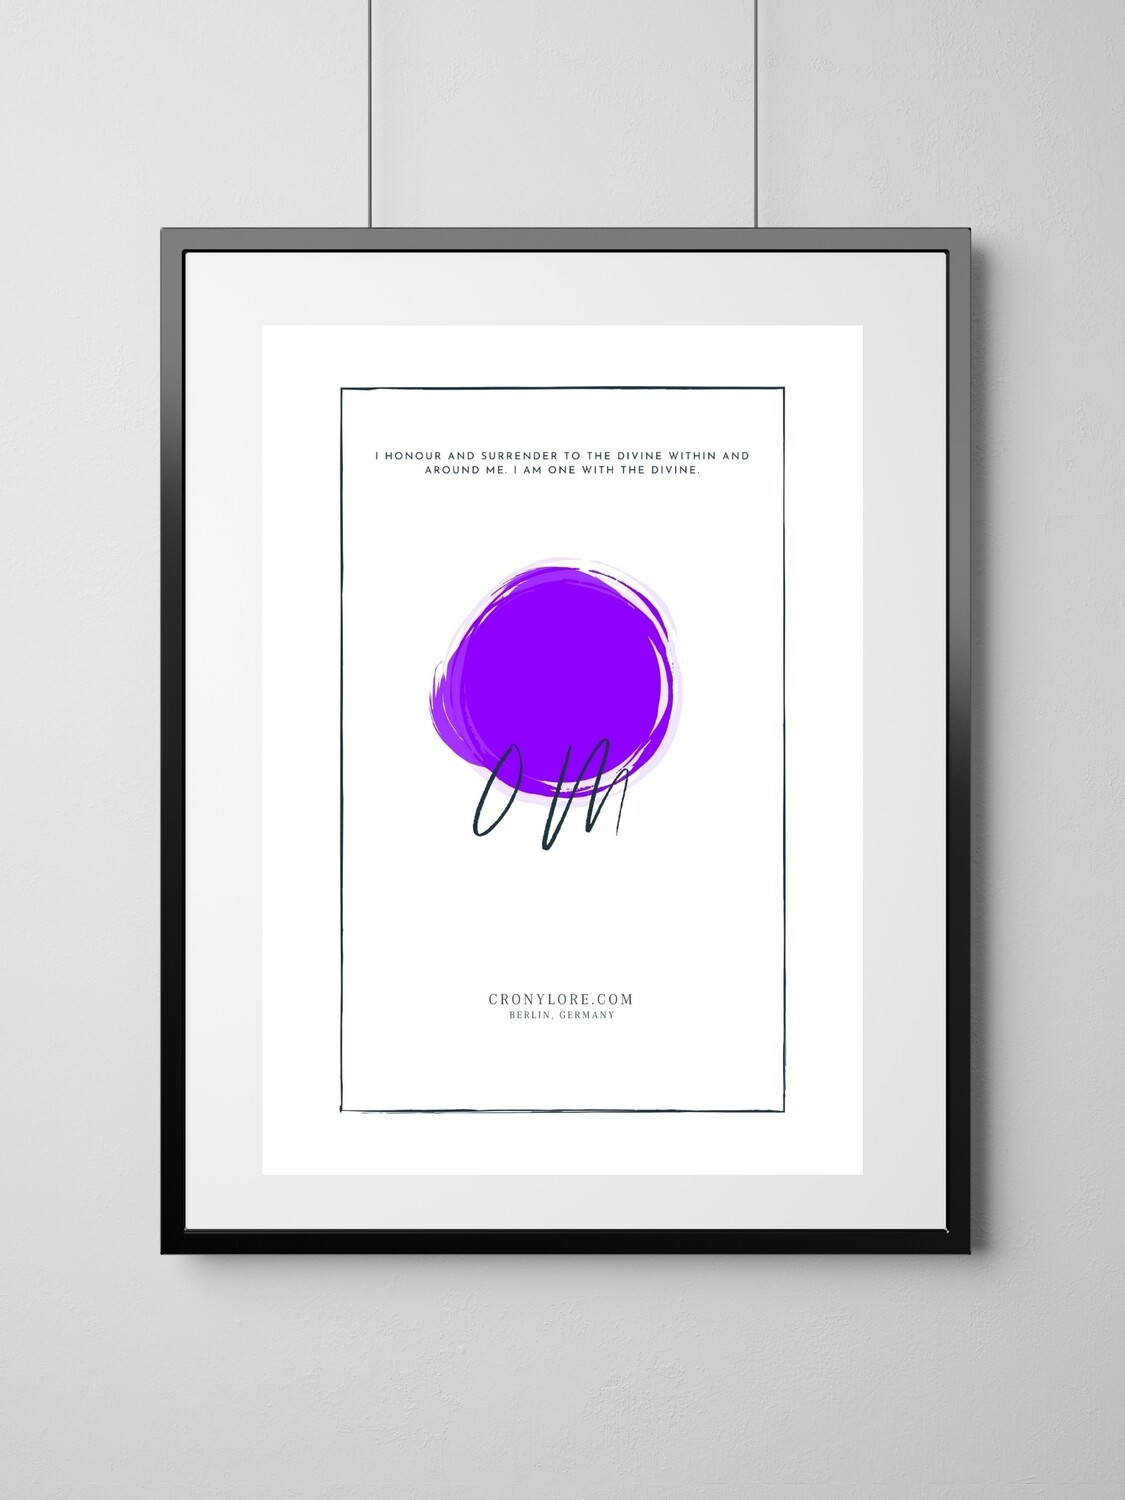 Crown Chakra (Art Poster, Instant Download)